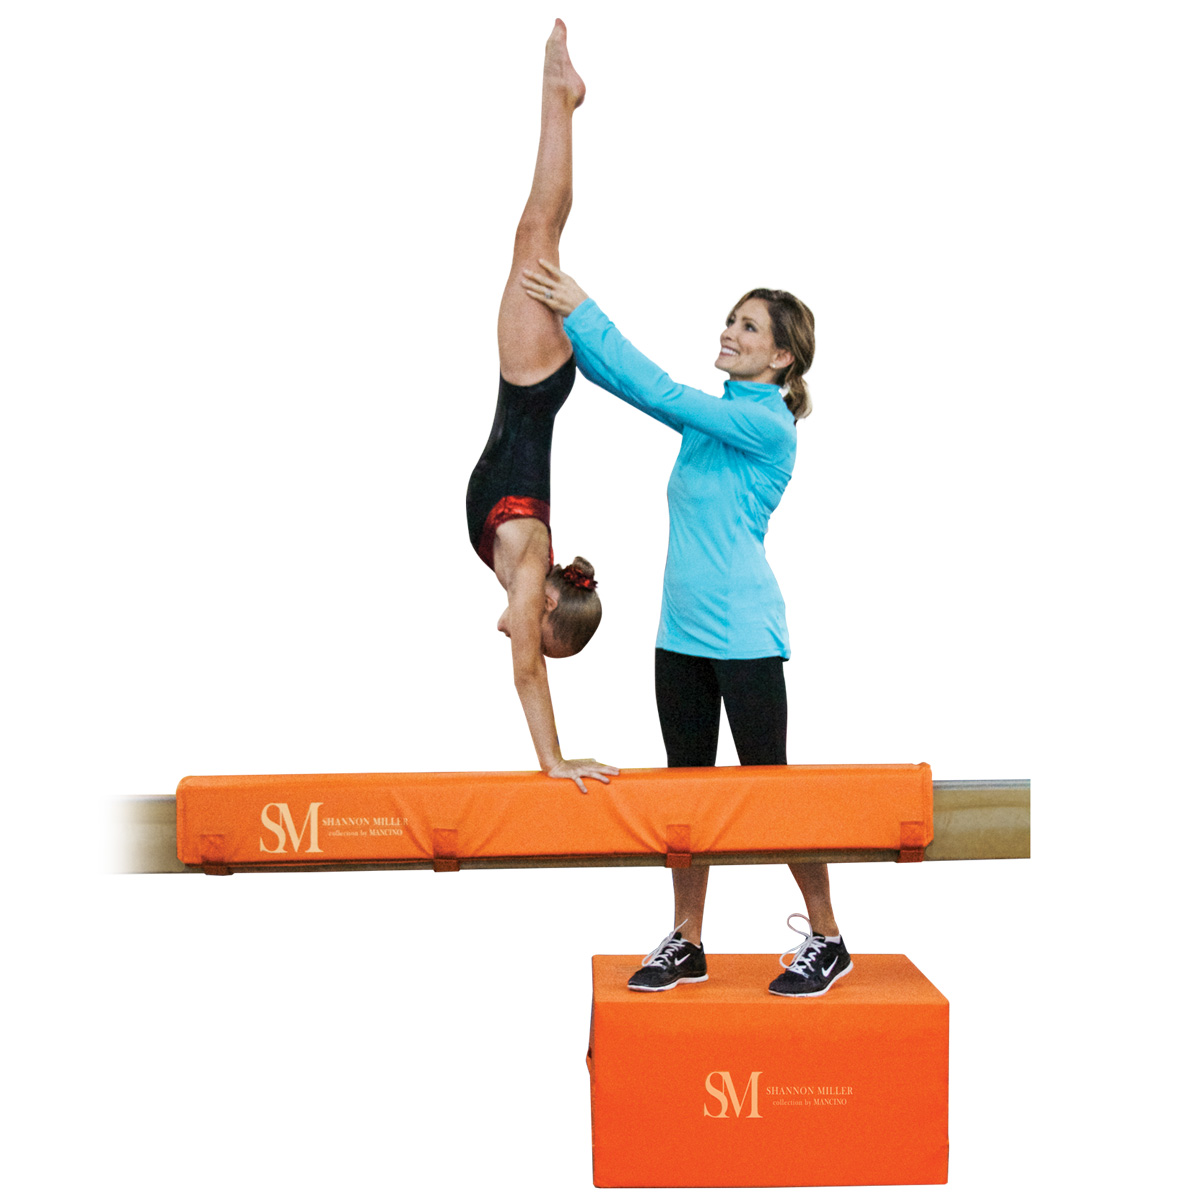 Shannon Miller Collection Beam Wrap with spot block